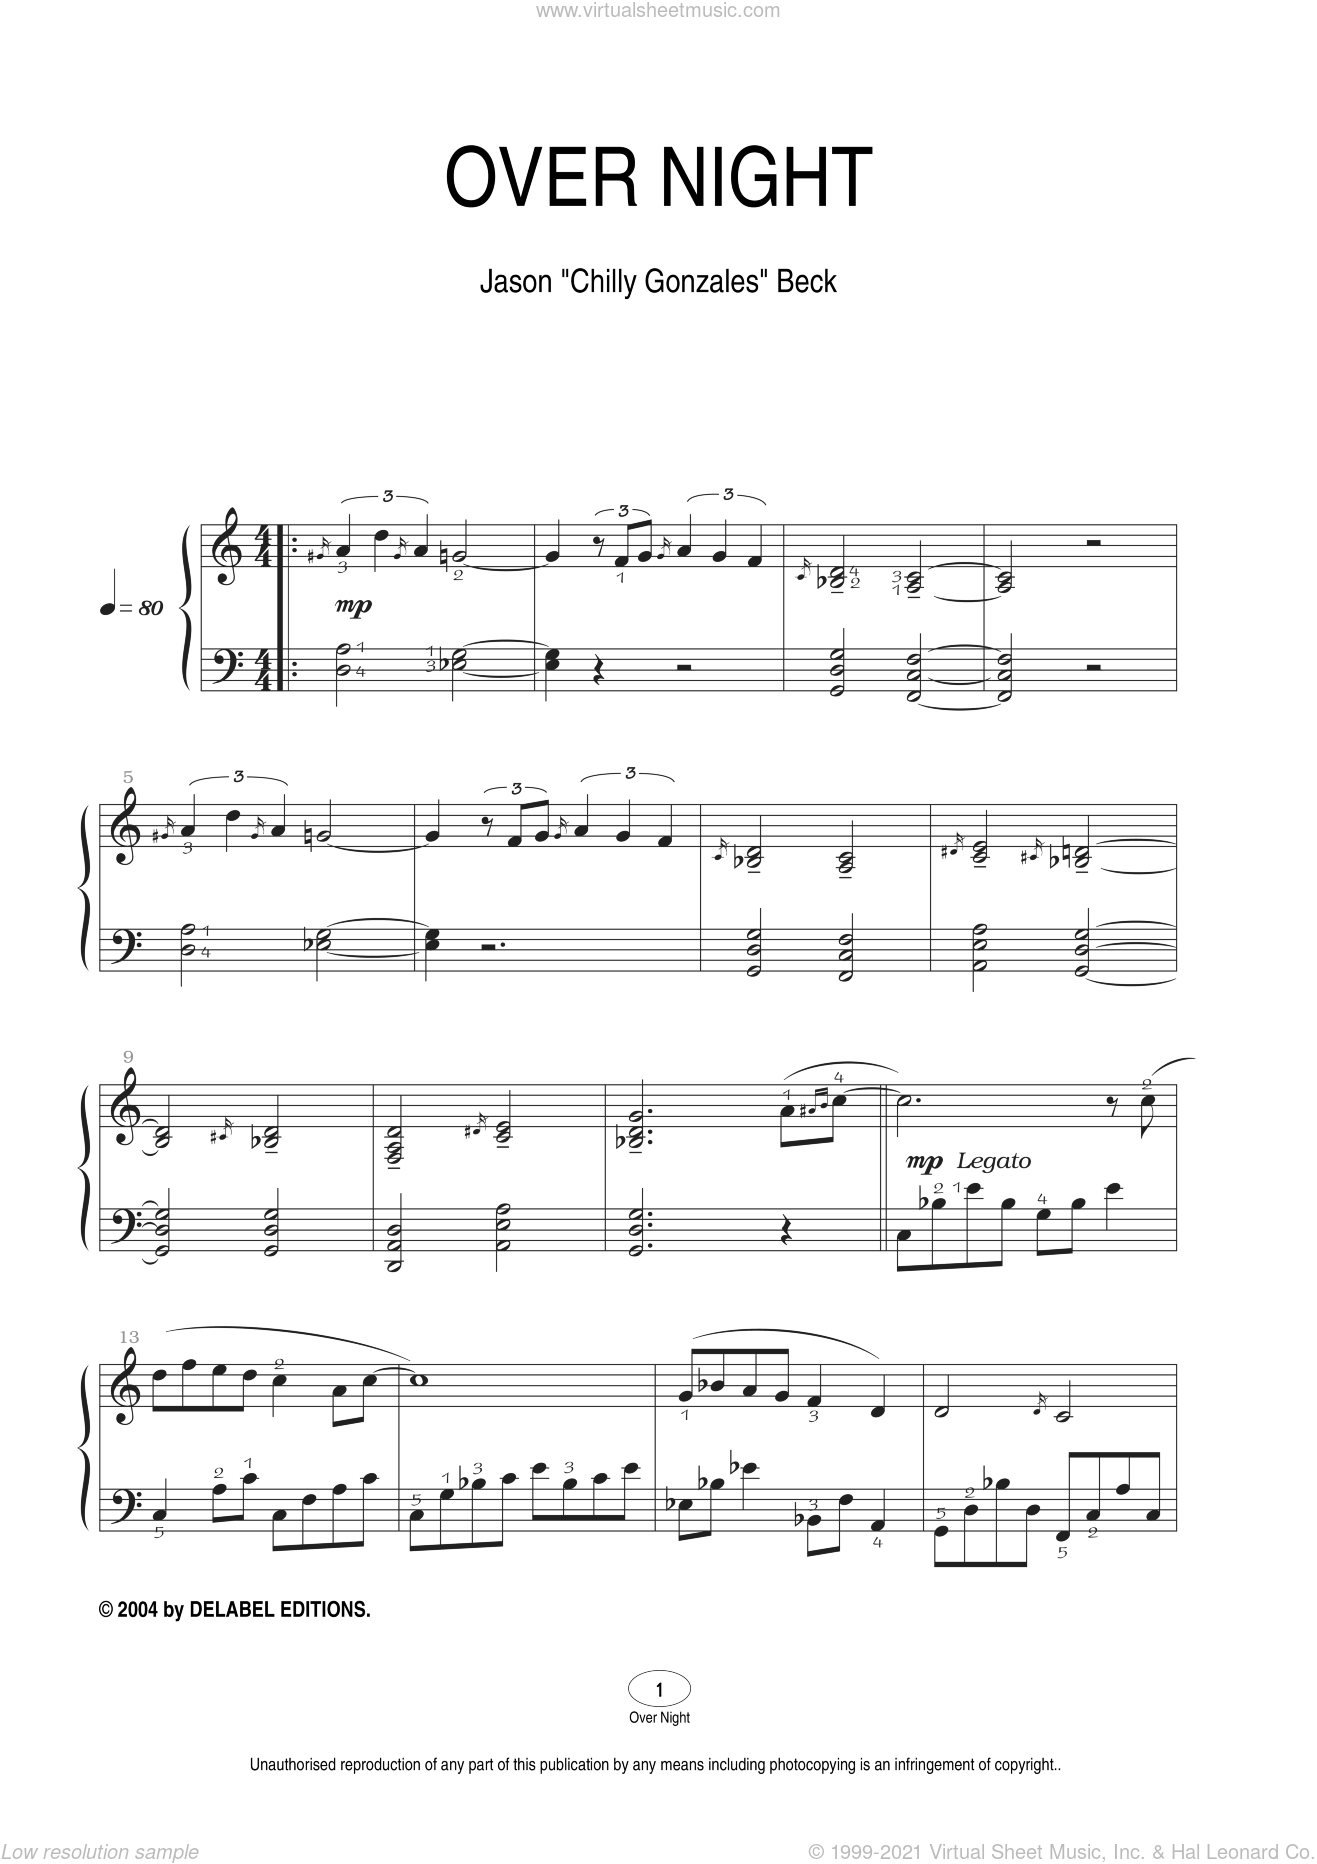 Over Night sheet music for piano solo by Chilly Gonzales and Jason Beck, intermediate